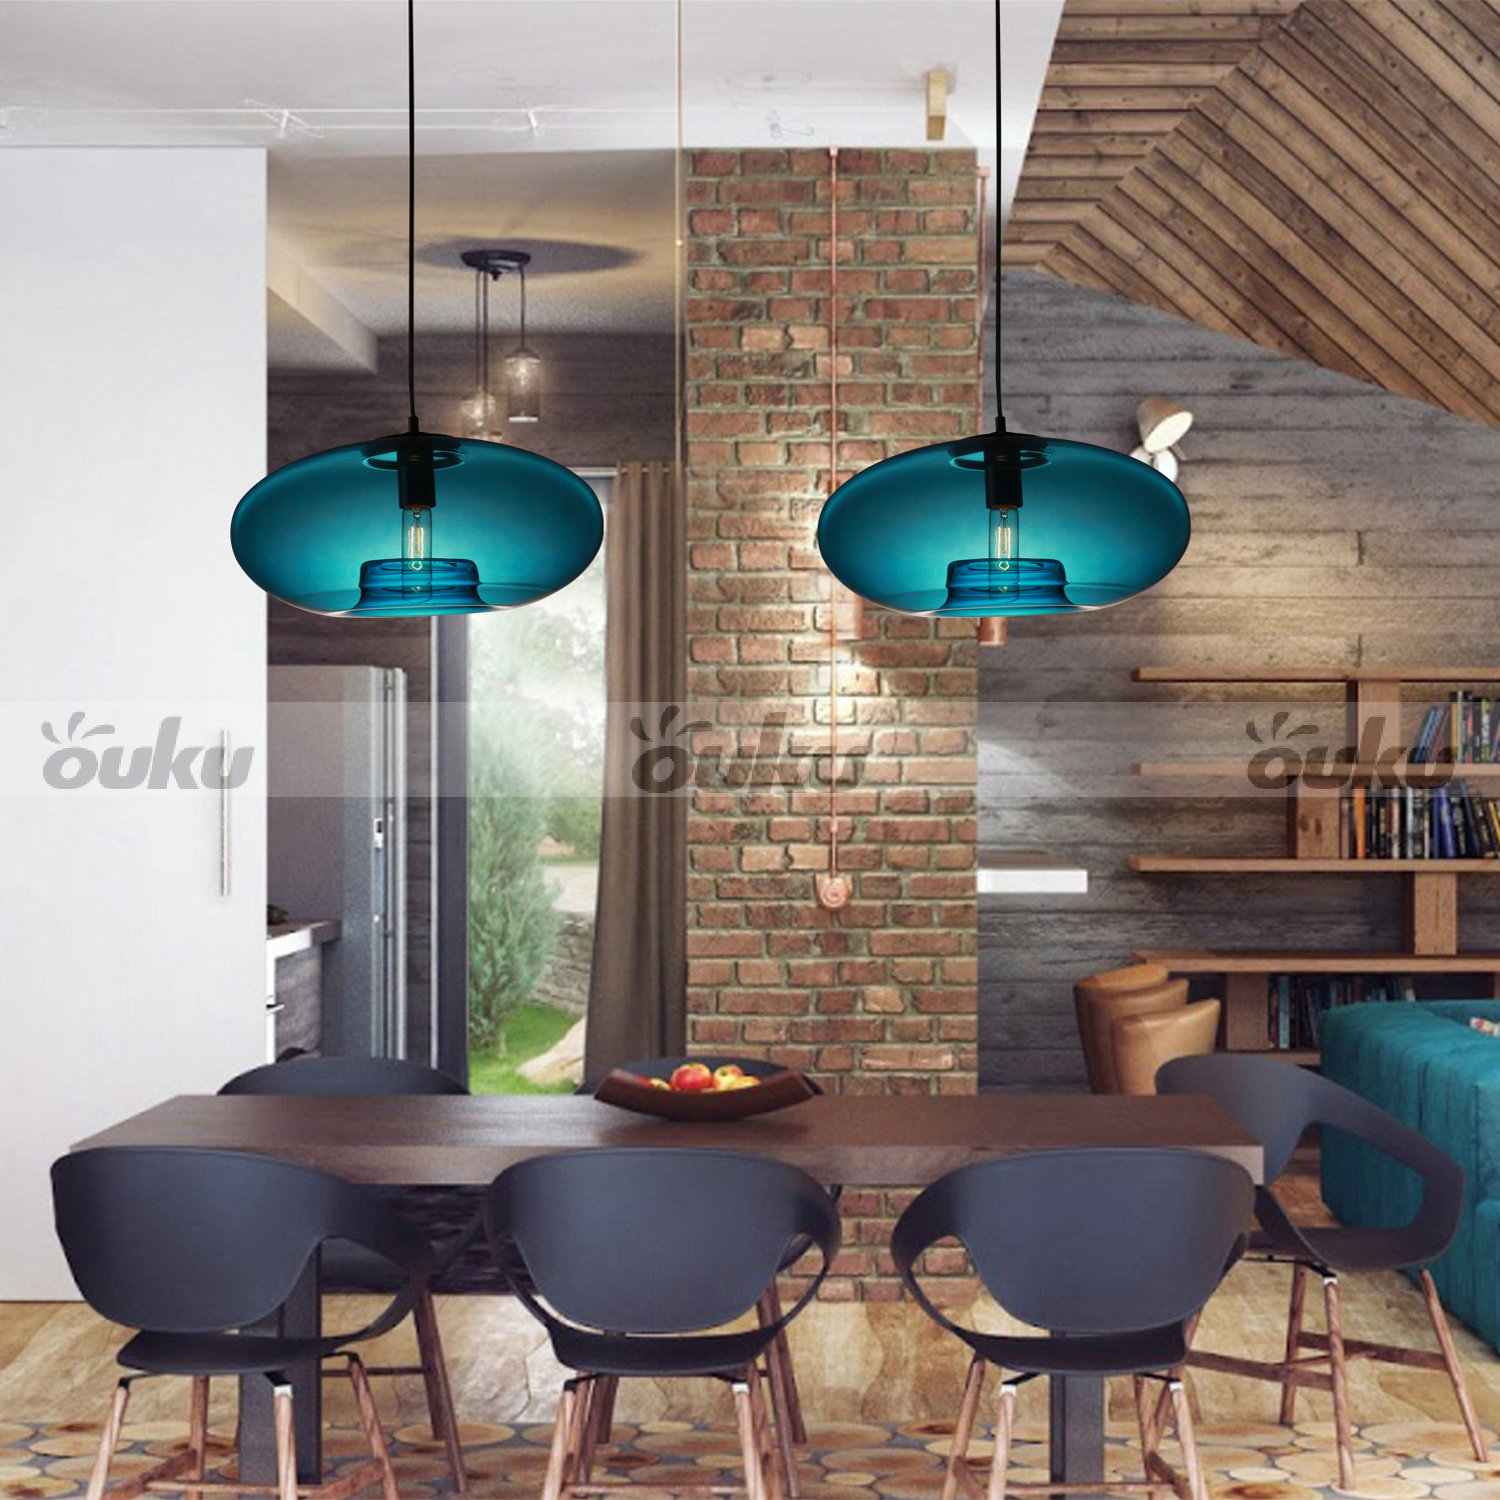 specification light information type pendant lights features bulb